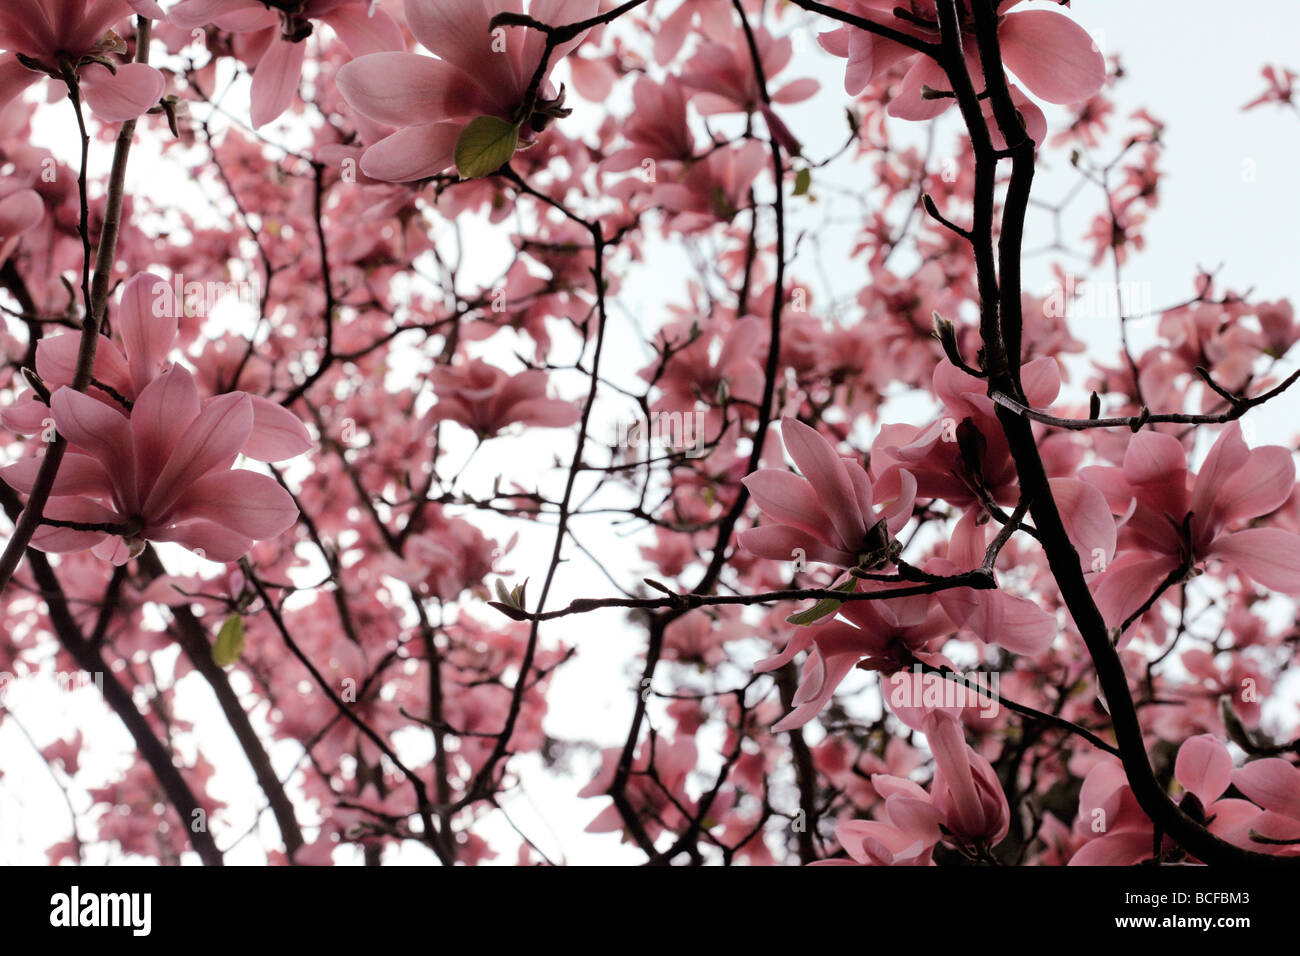 striking pink magnolia tree blooms fine art photography Jane Ann Butler Photography JABP433 Stock Photo